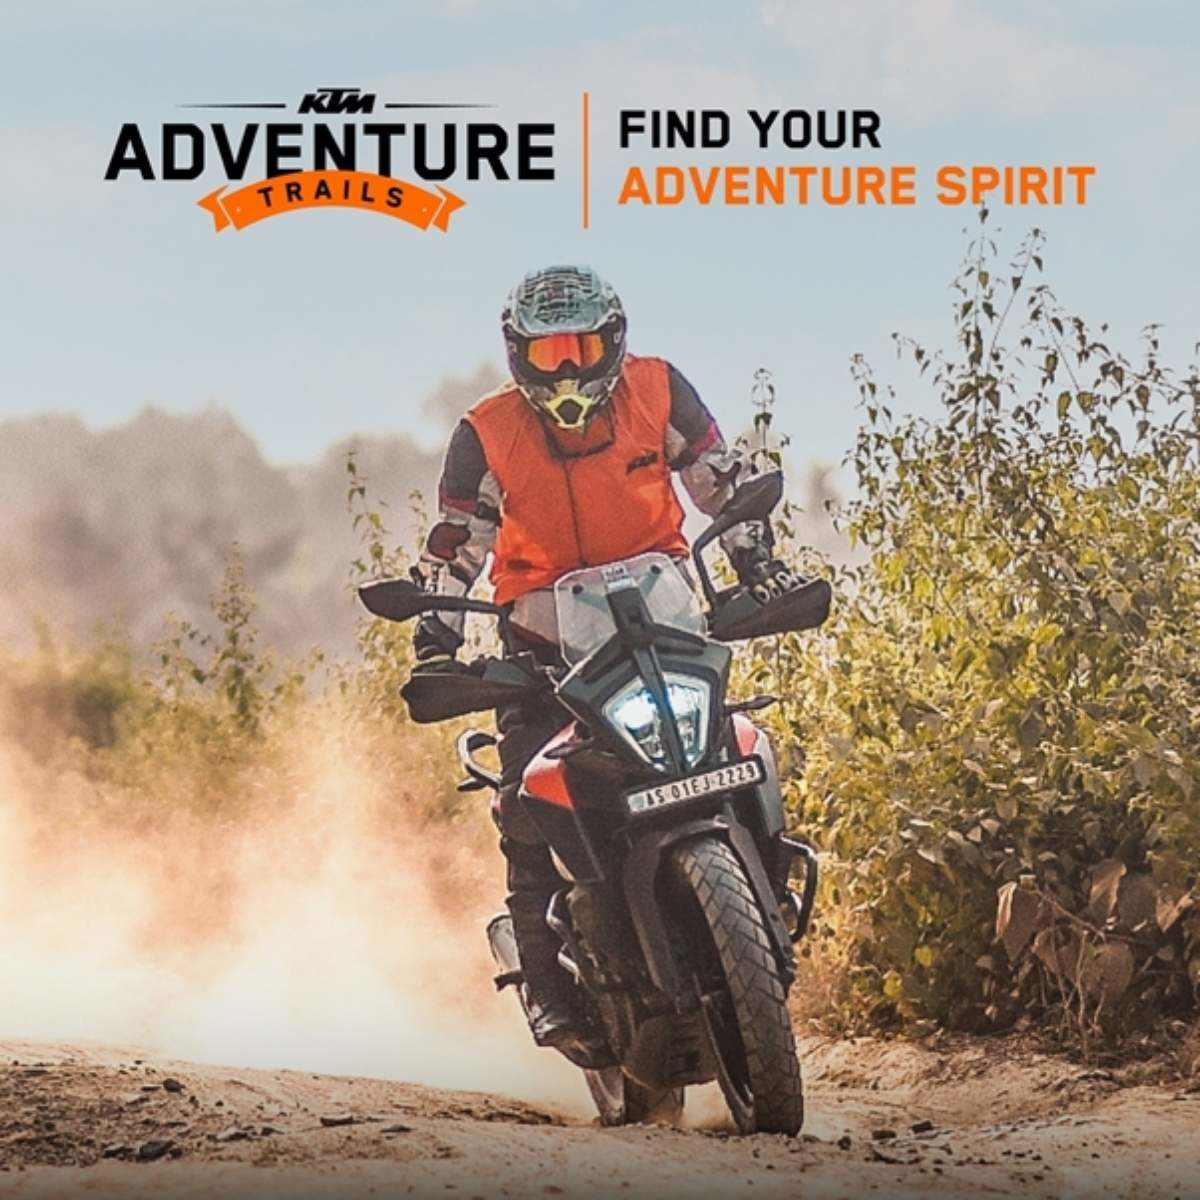 KTM Adventure trails